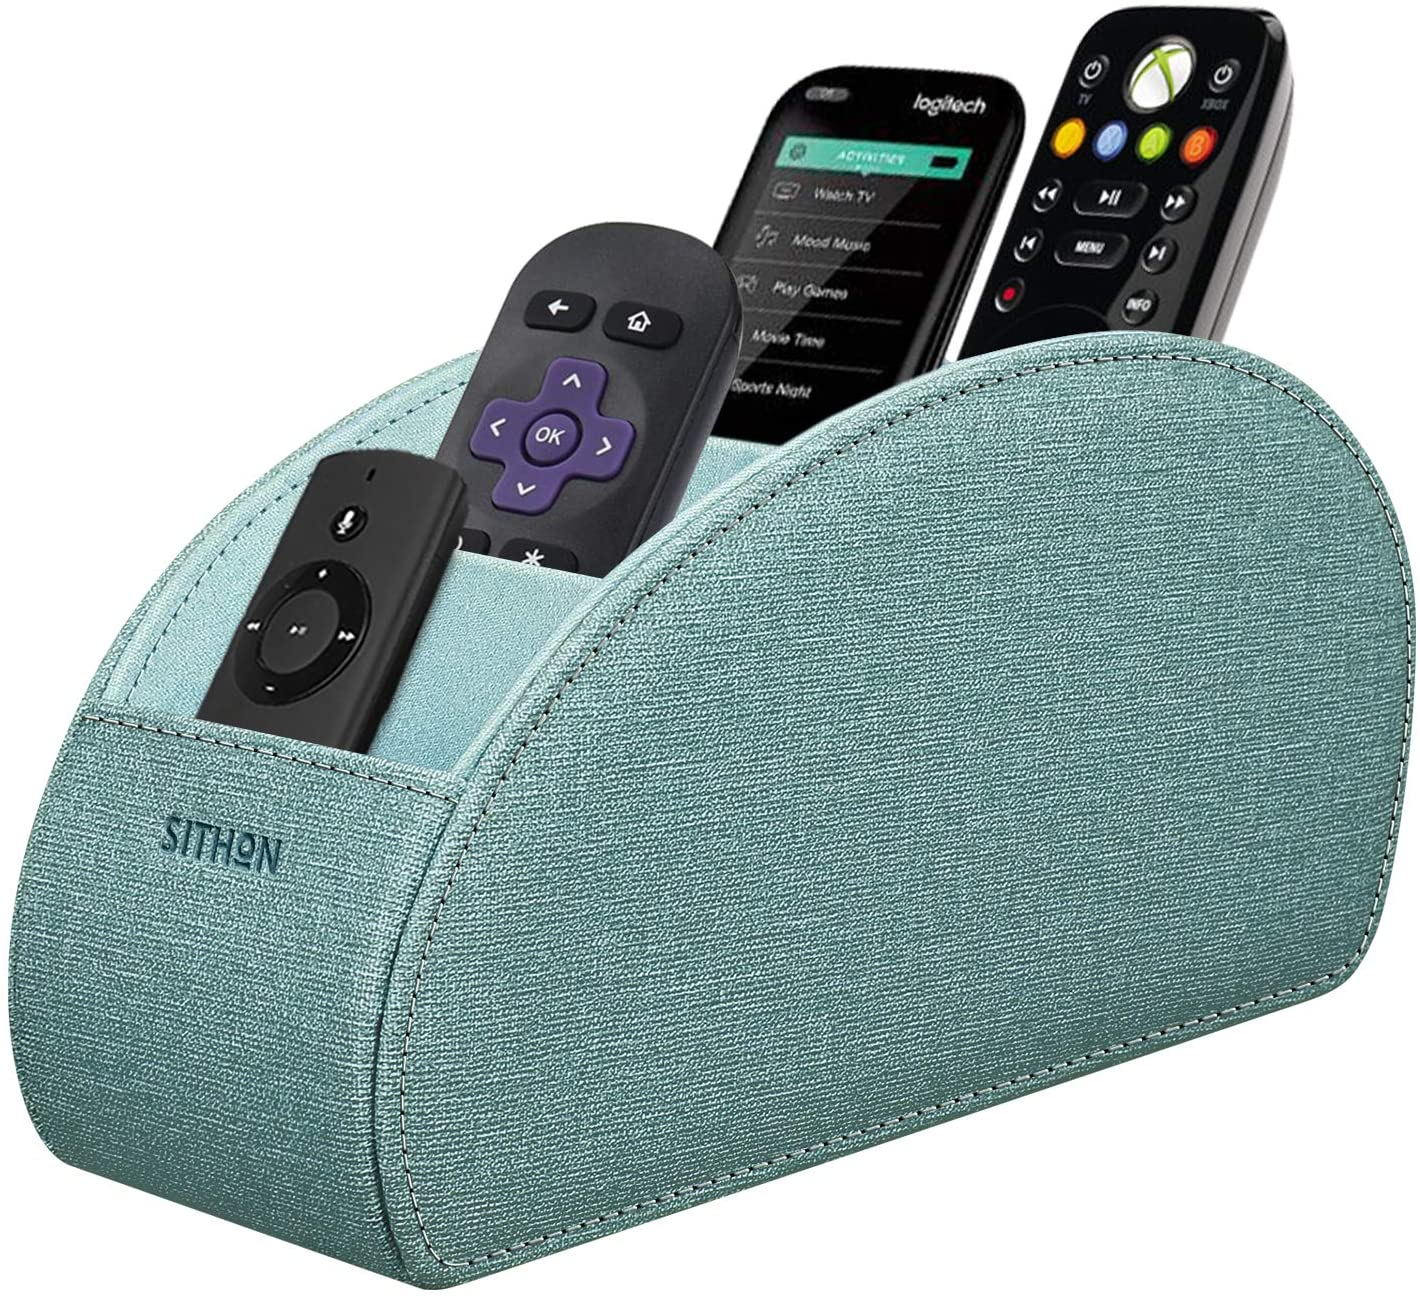 SITHON Remote Control Holder with 5 Compartments - Remote Caddy Desktop Organizer Store TV, DVD, Blu-Ray, Media Player, Heater Controllers, Turquoise